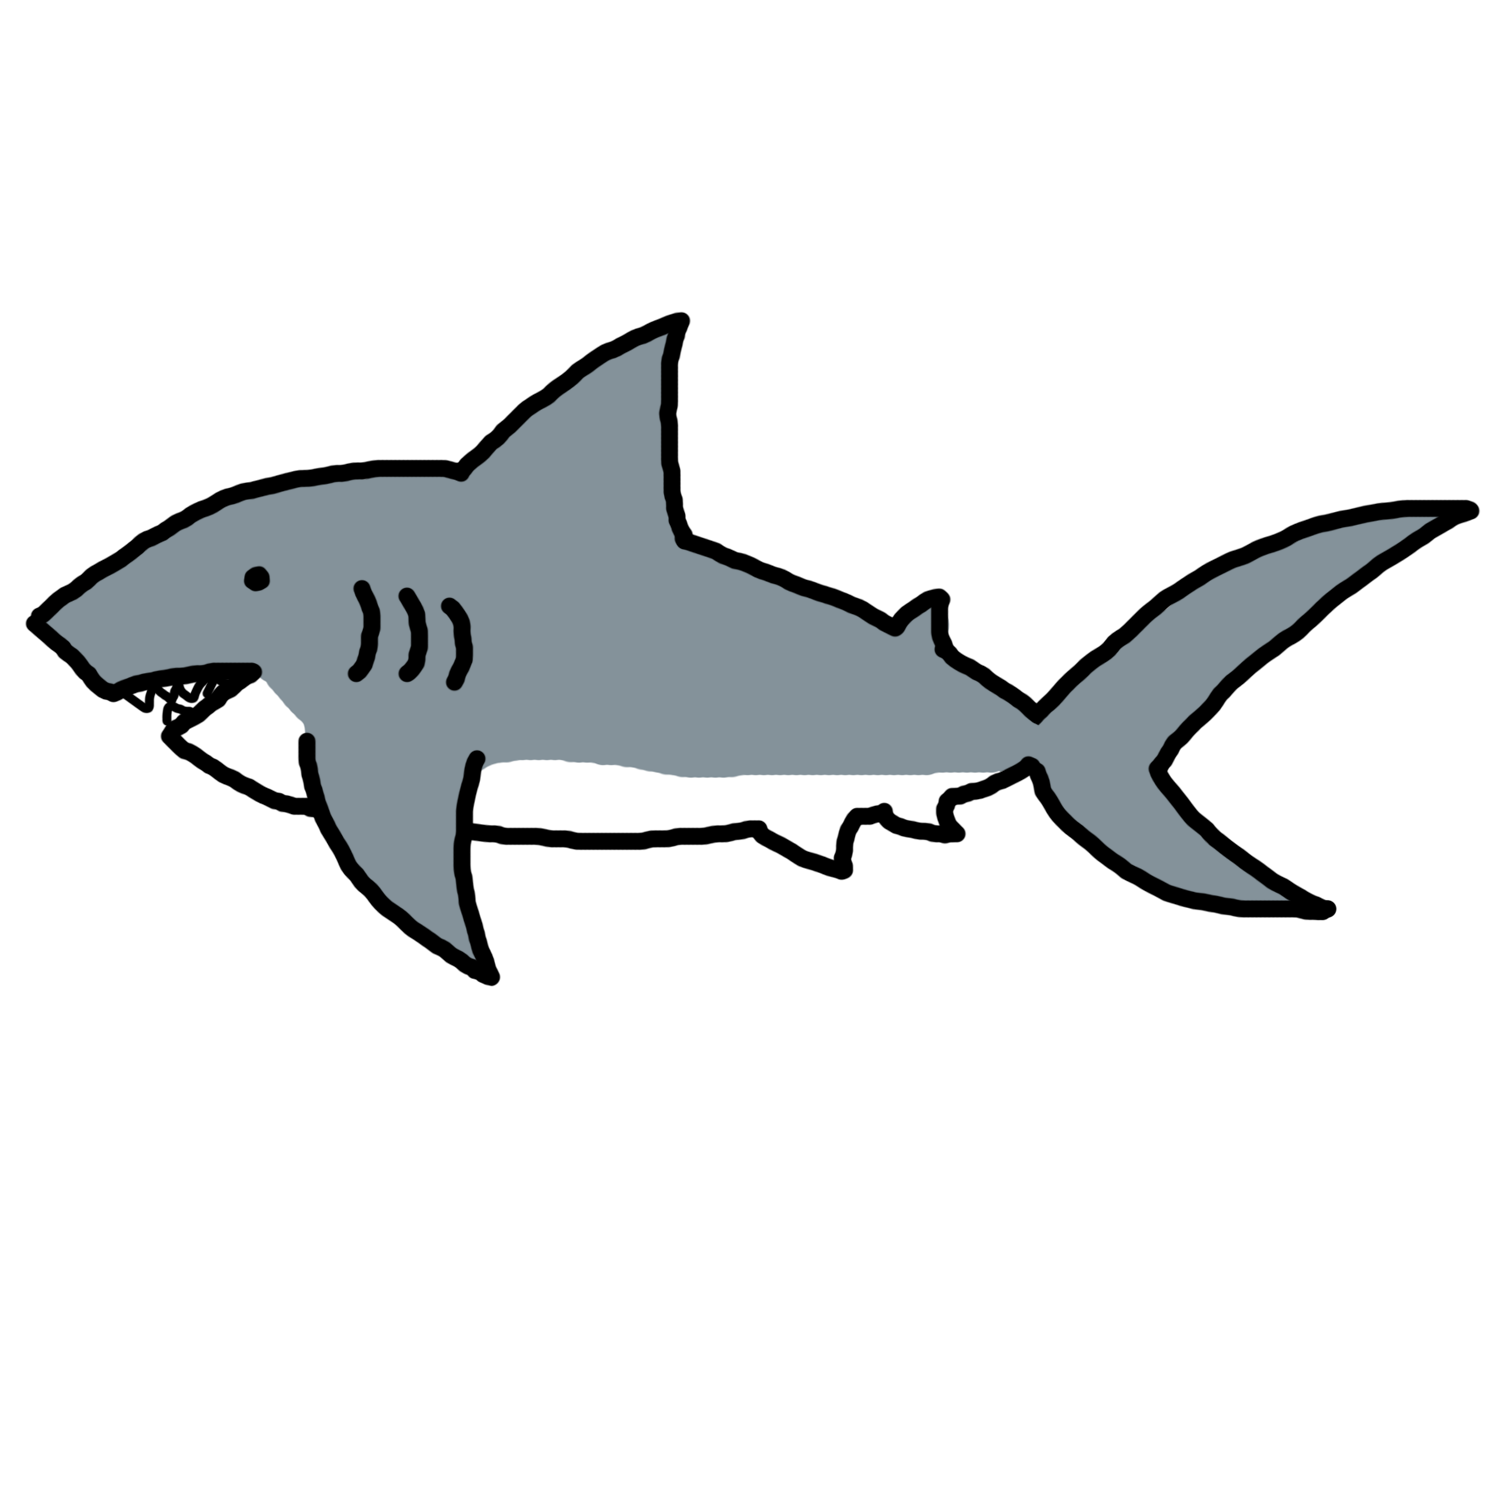 Sharks free clipart vector freeuse library Free Free Shark Cliparts, Download Free Clip Art, Free Clip ... vector freeuse library